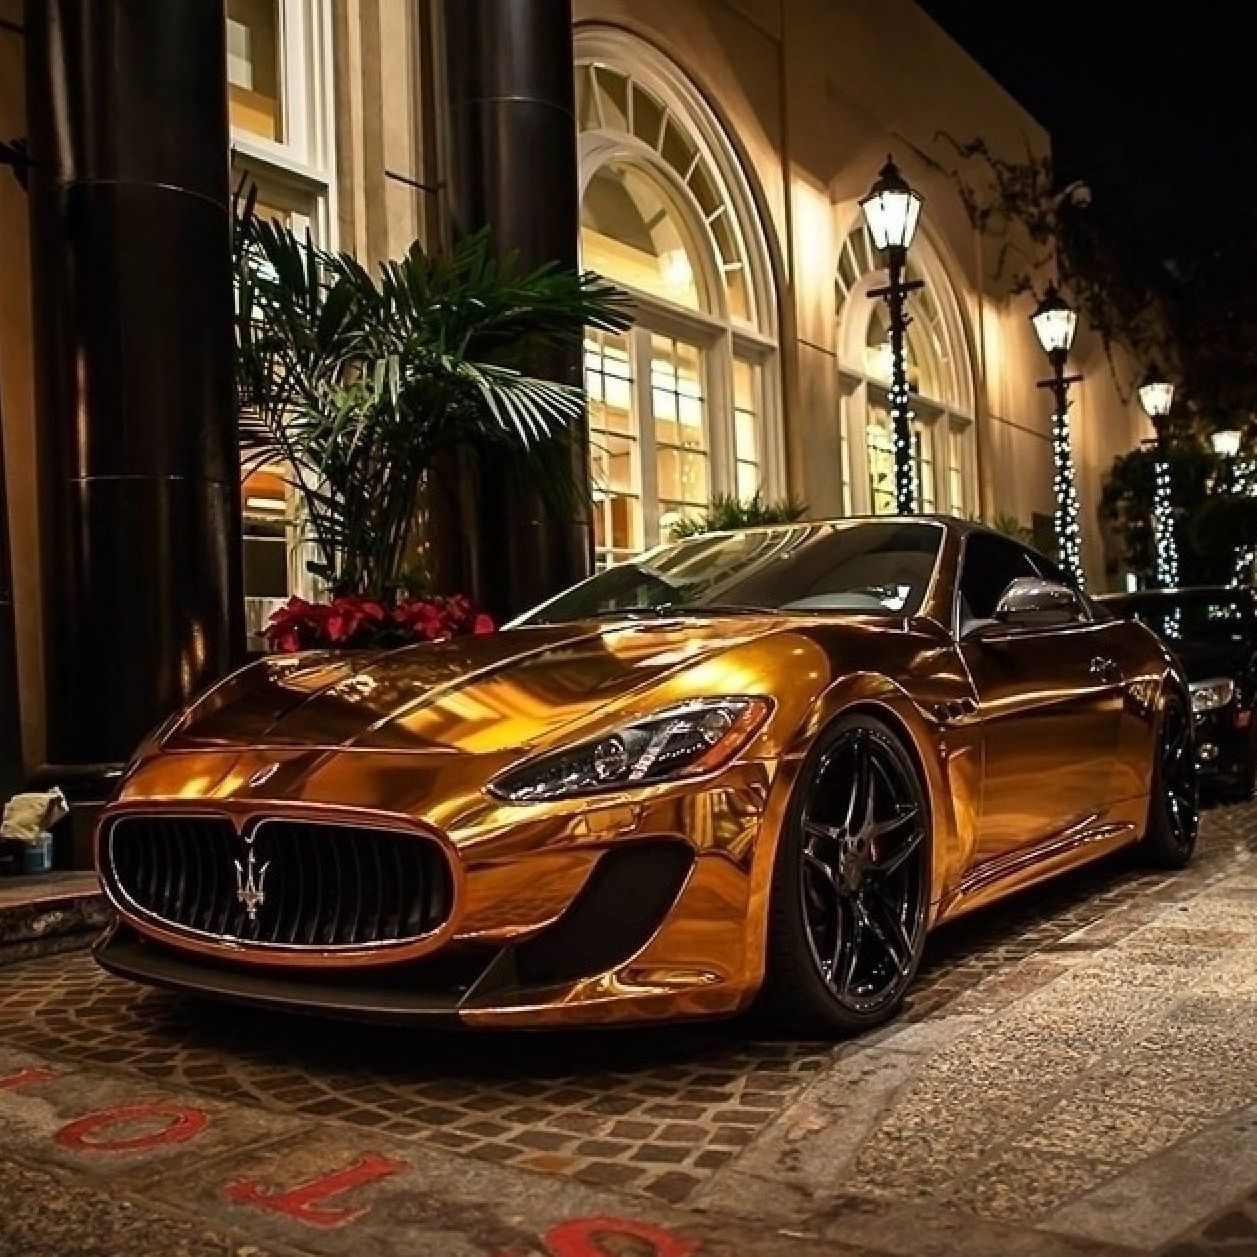 Pin By Archimood On MASERATI CARS